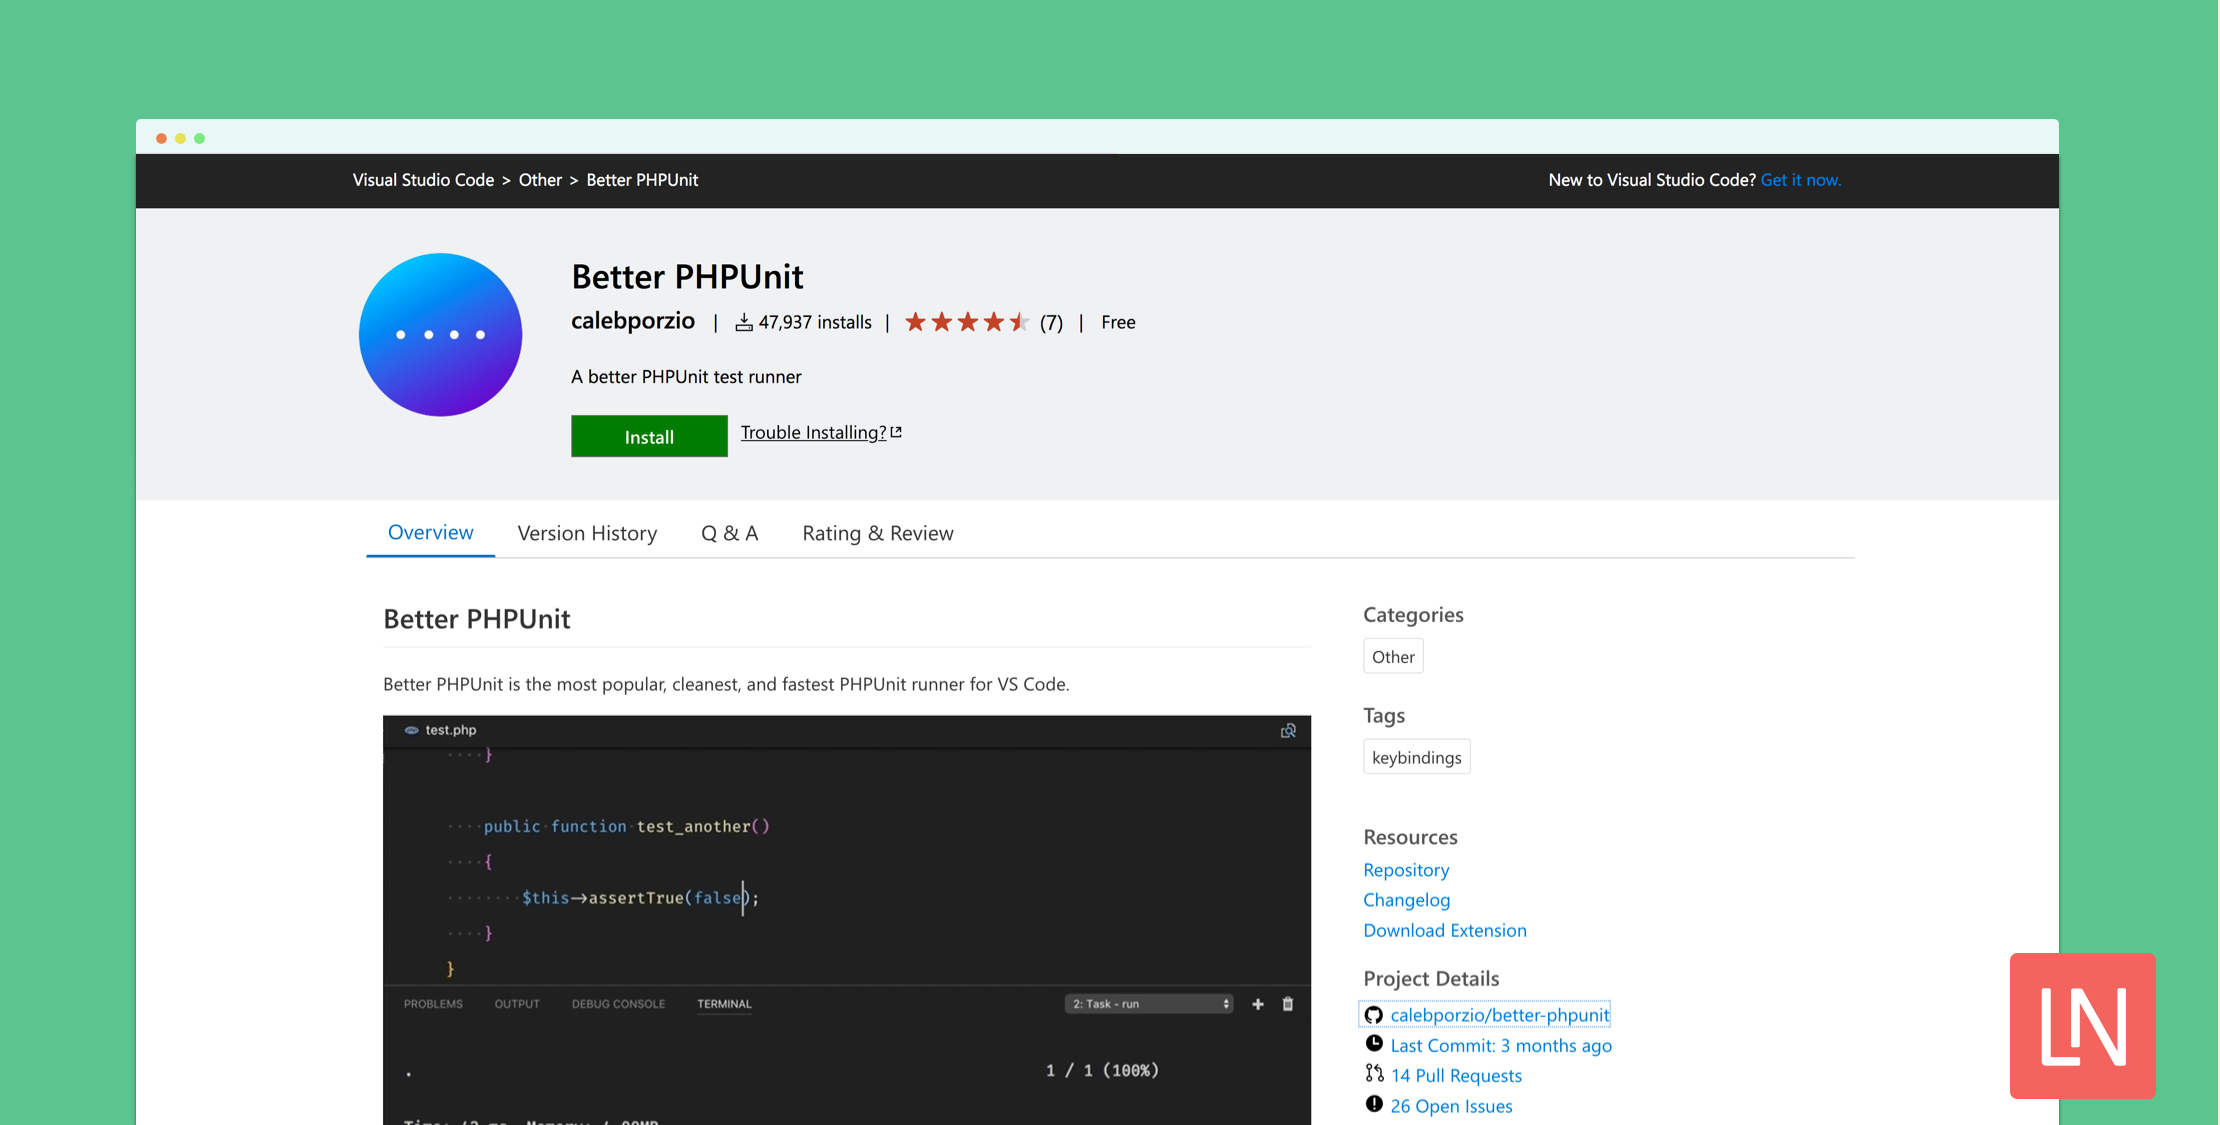 better-phpunit-vs-code-featured.png